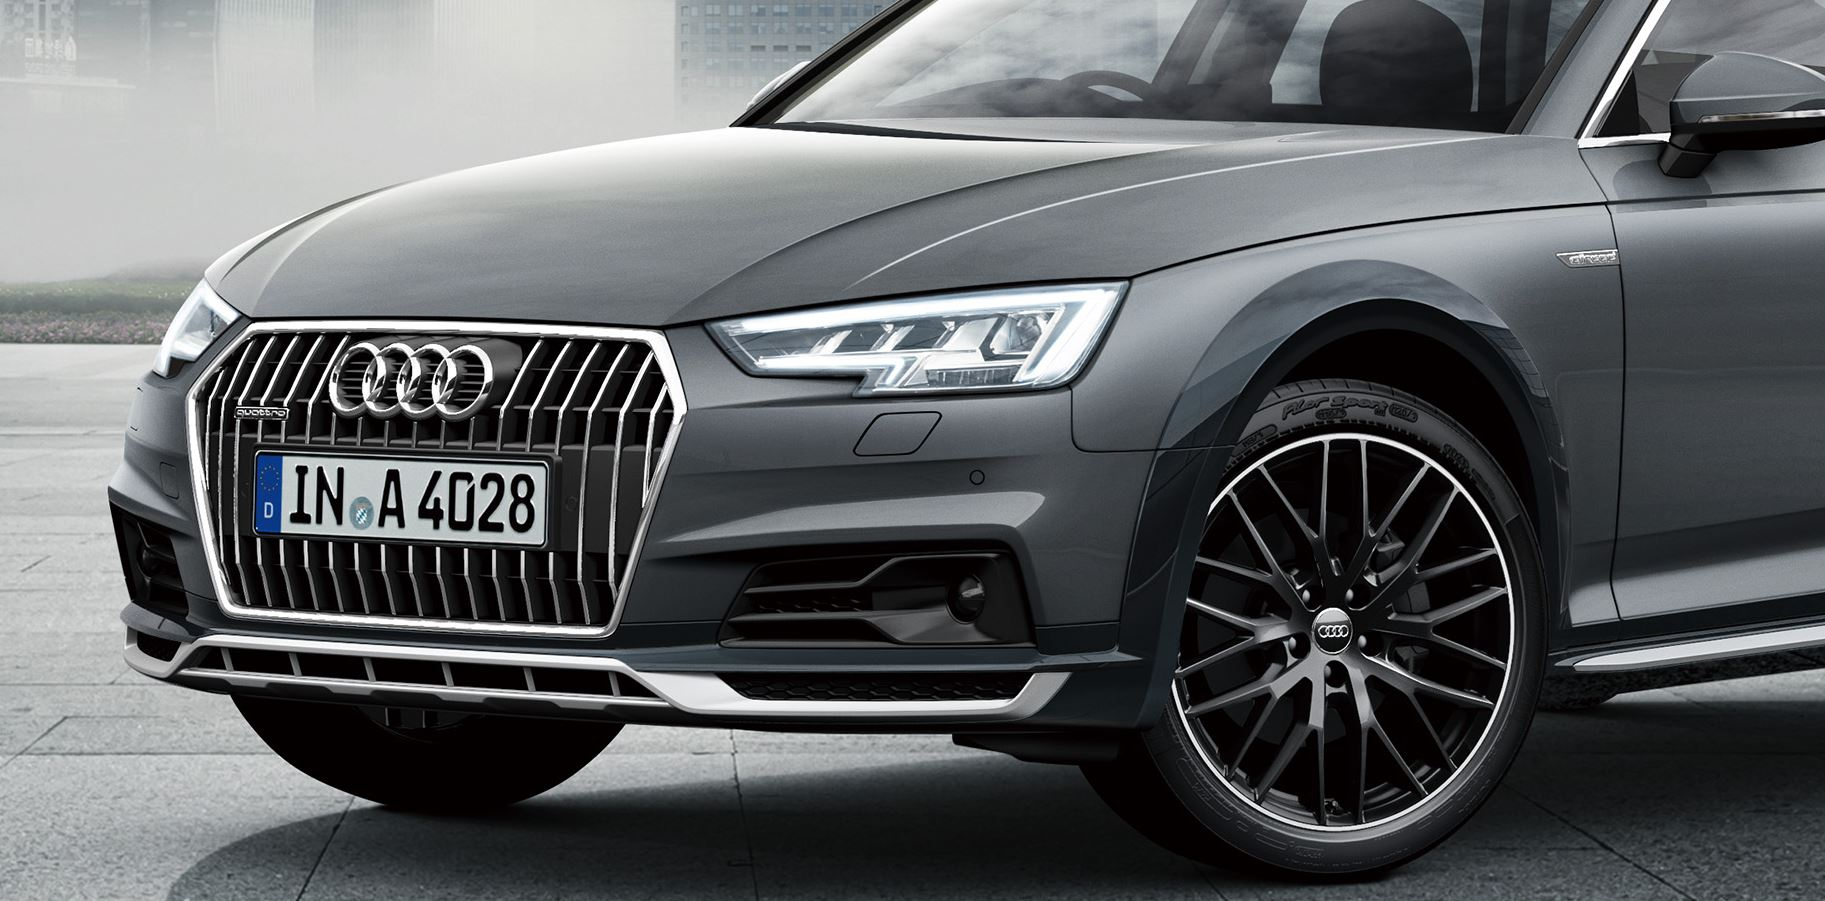 Audi A4 Allroad Absolute Has Piano Black Cladding In Japan